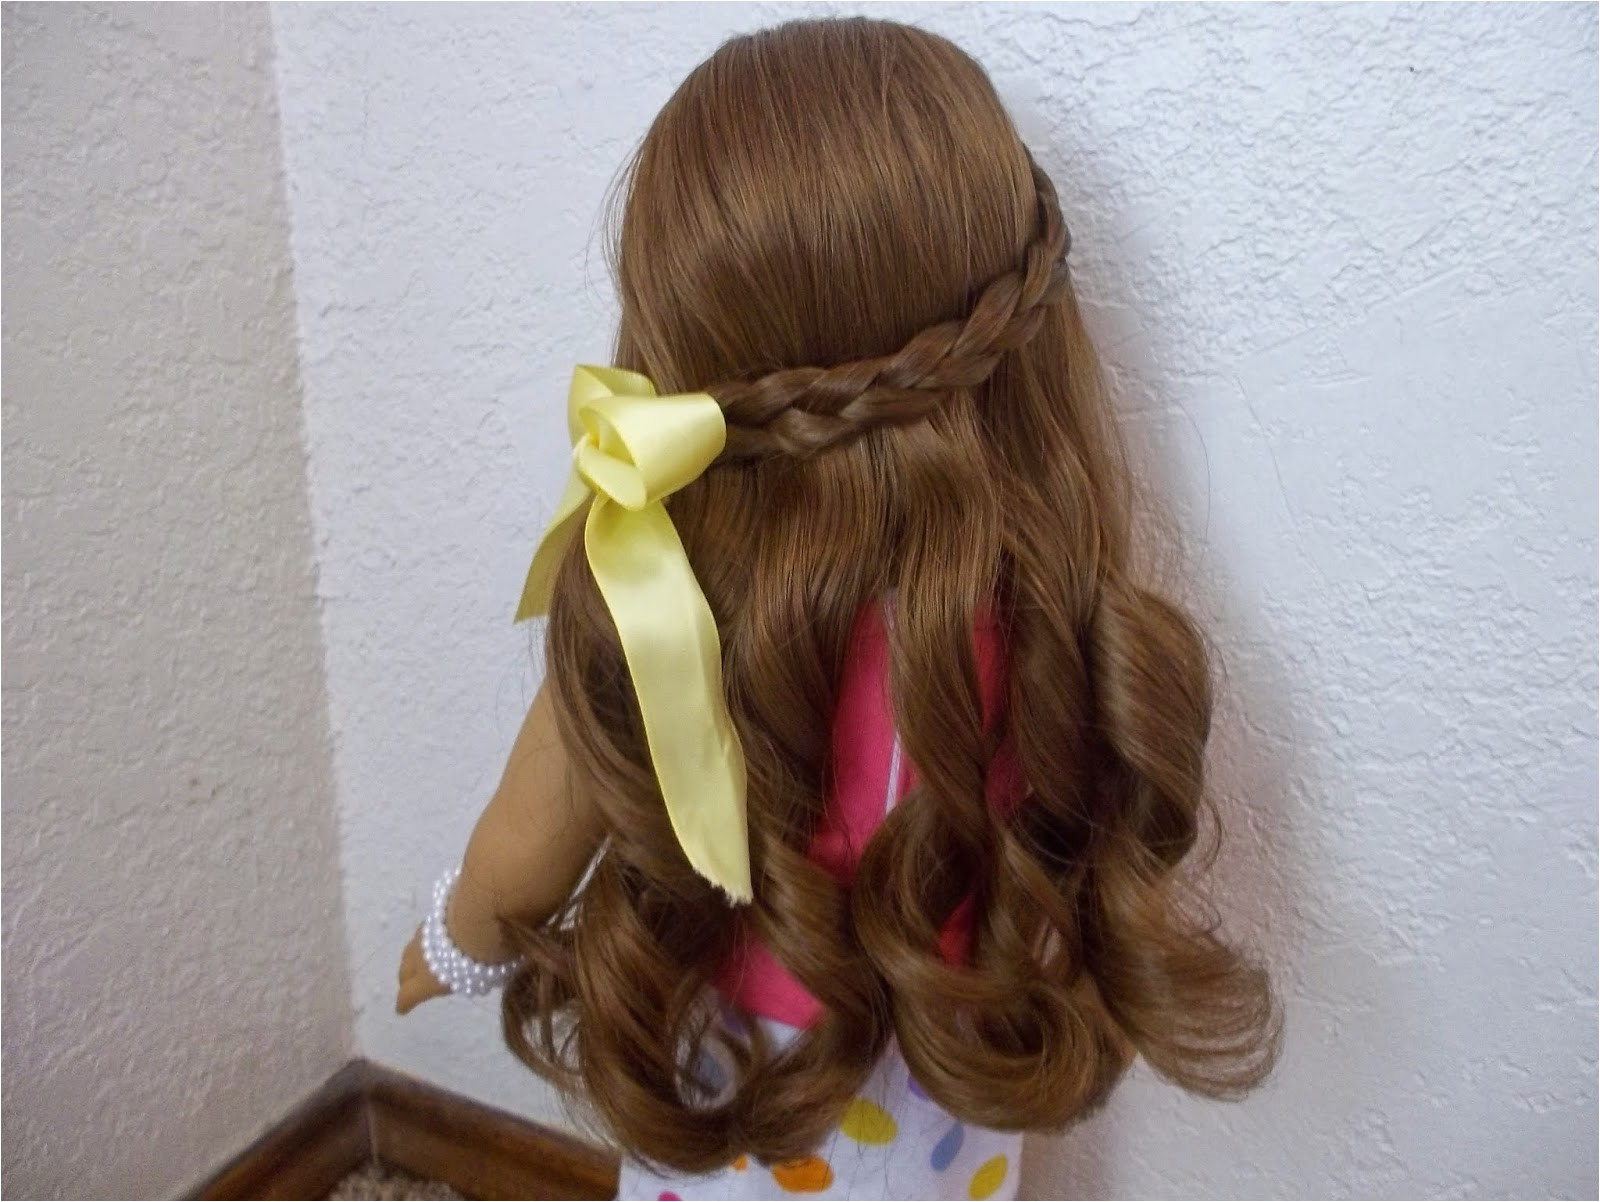 Style Cute American Girl Doll Hairstyles Different hairstyles ideas of Amazing Cute American Girl